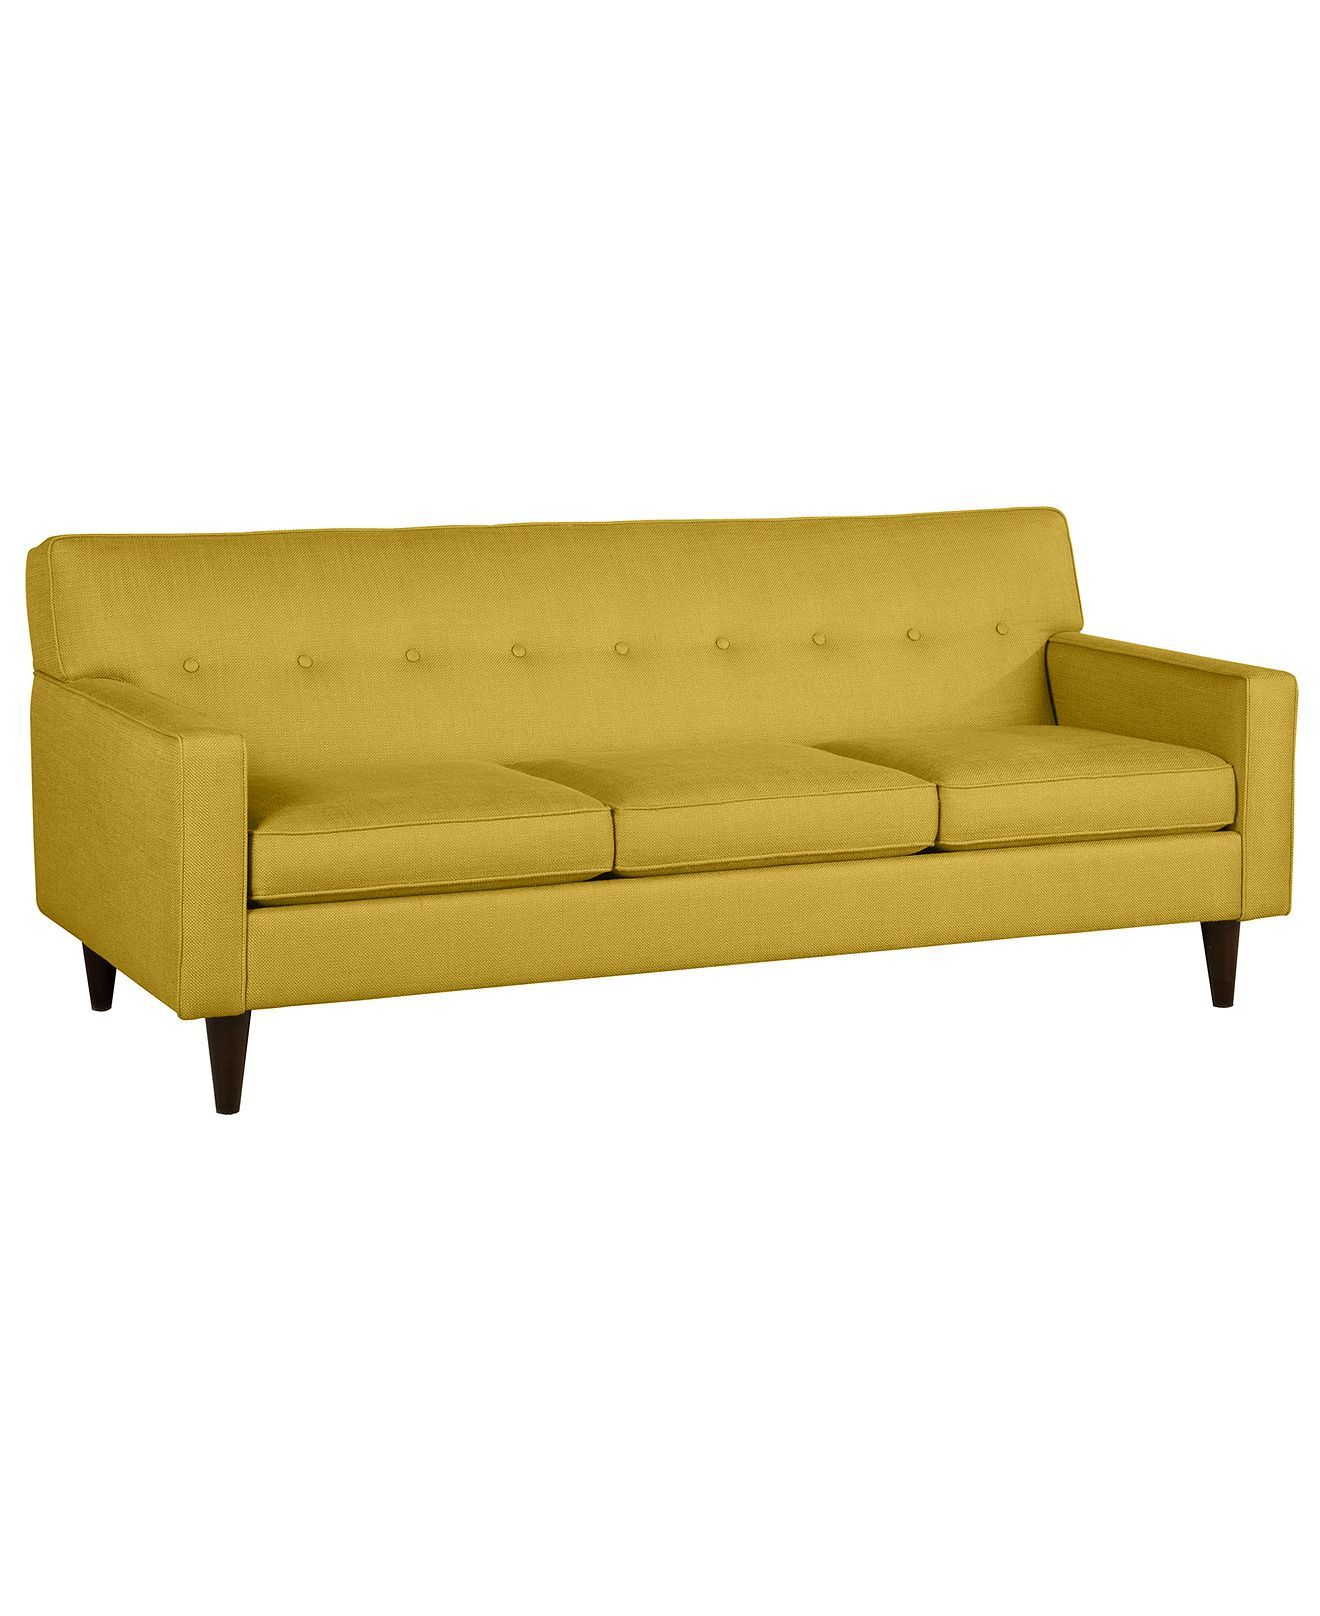 To go mustard or not to go mustard $699 sale Clare Fabric Sofa